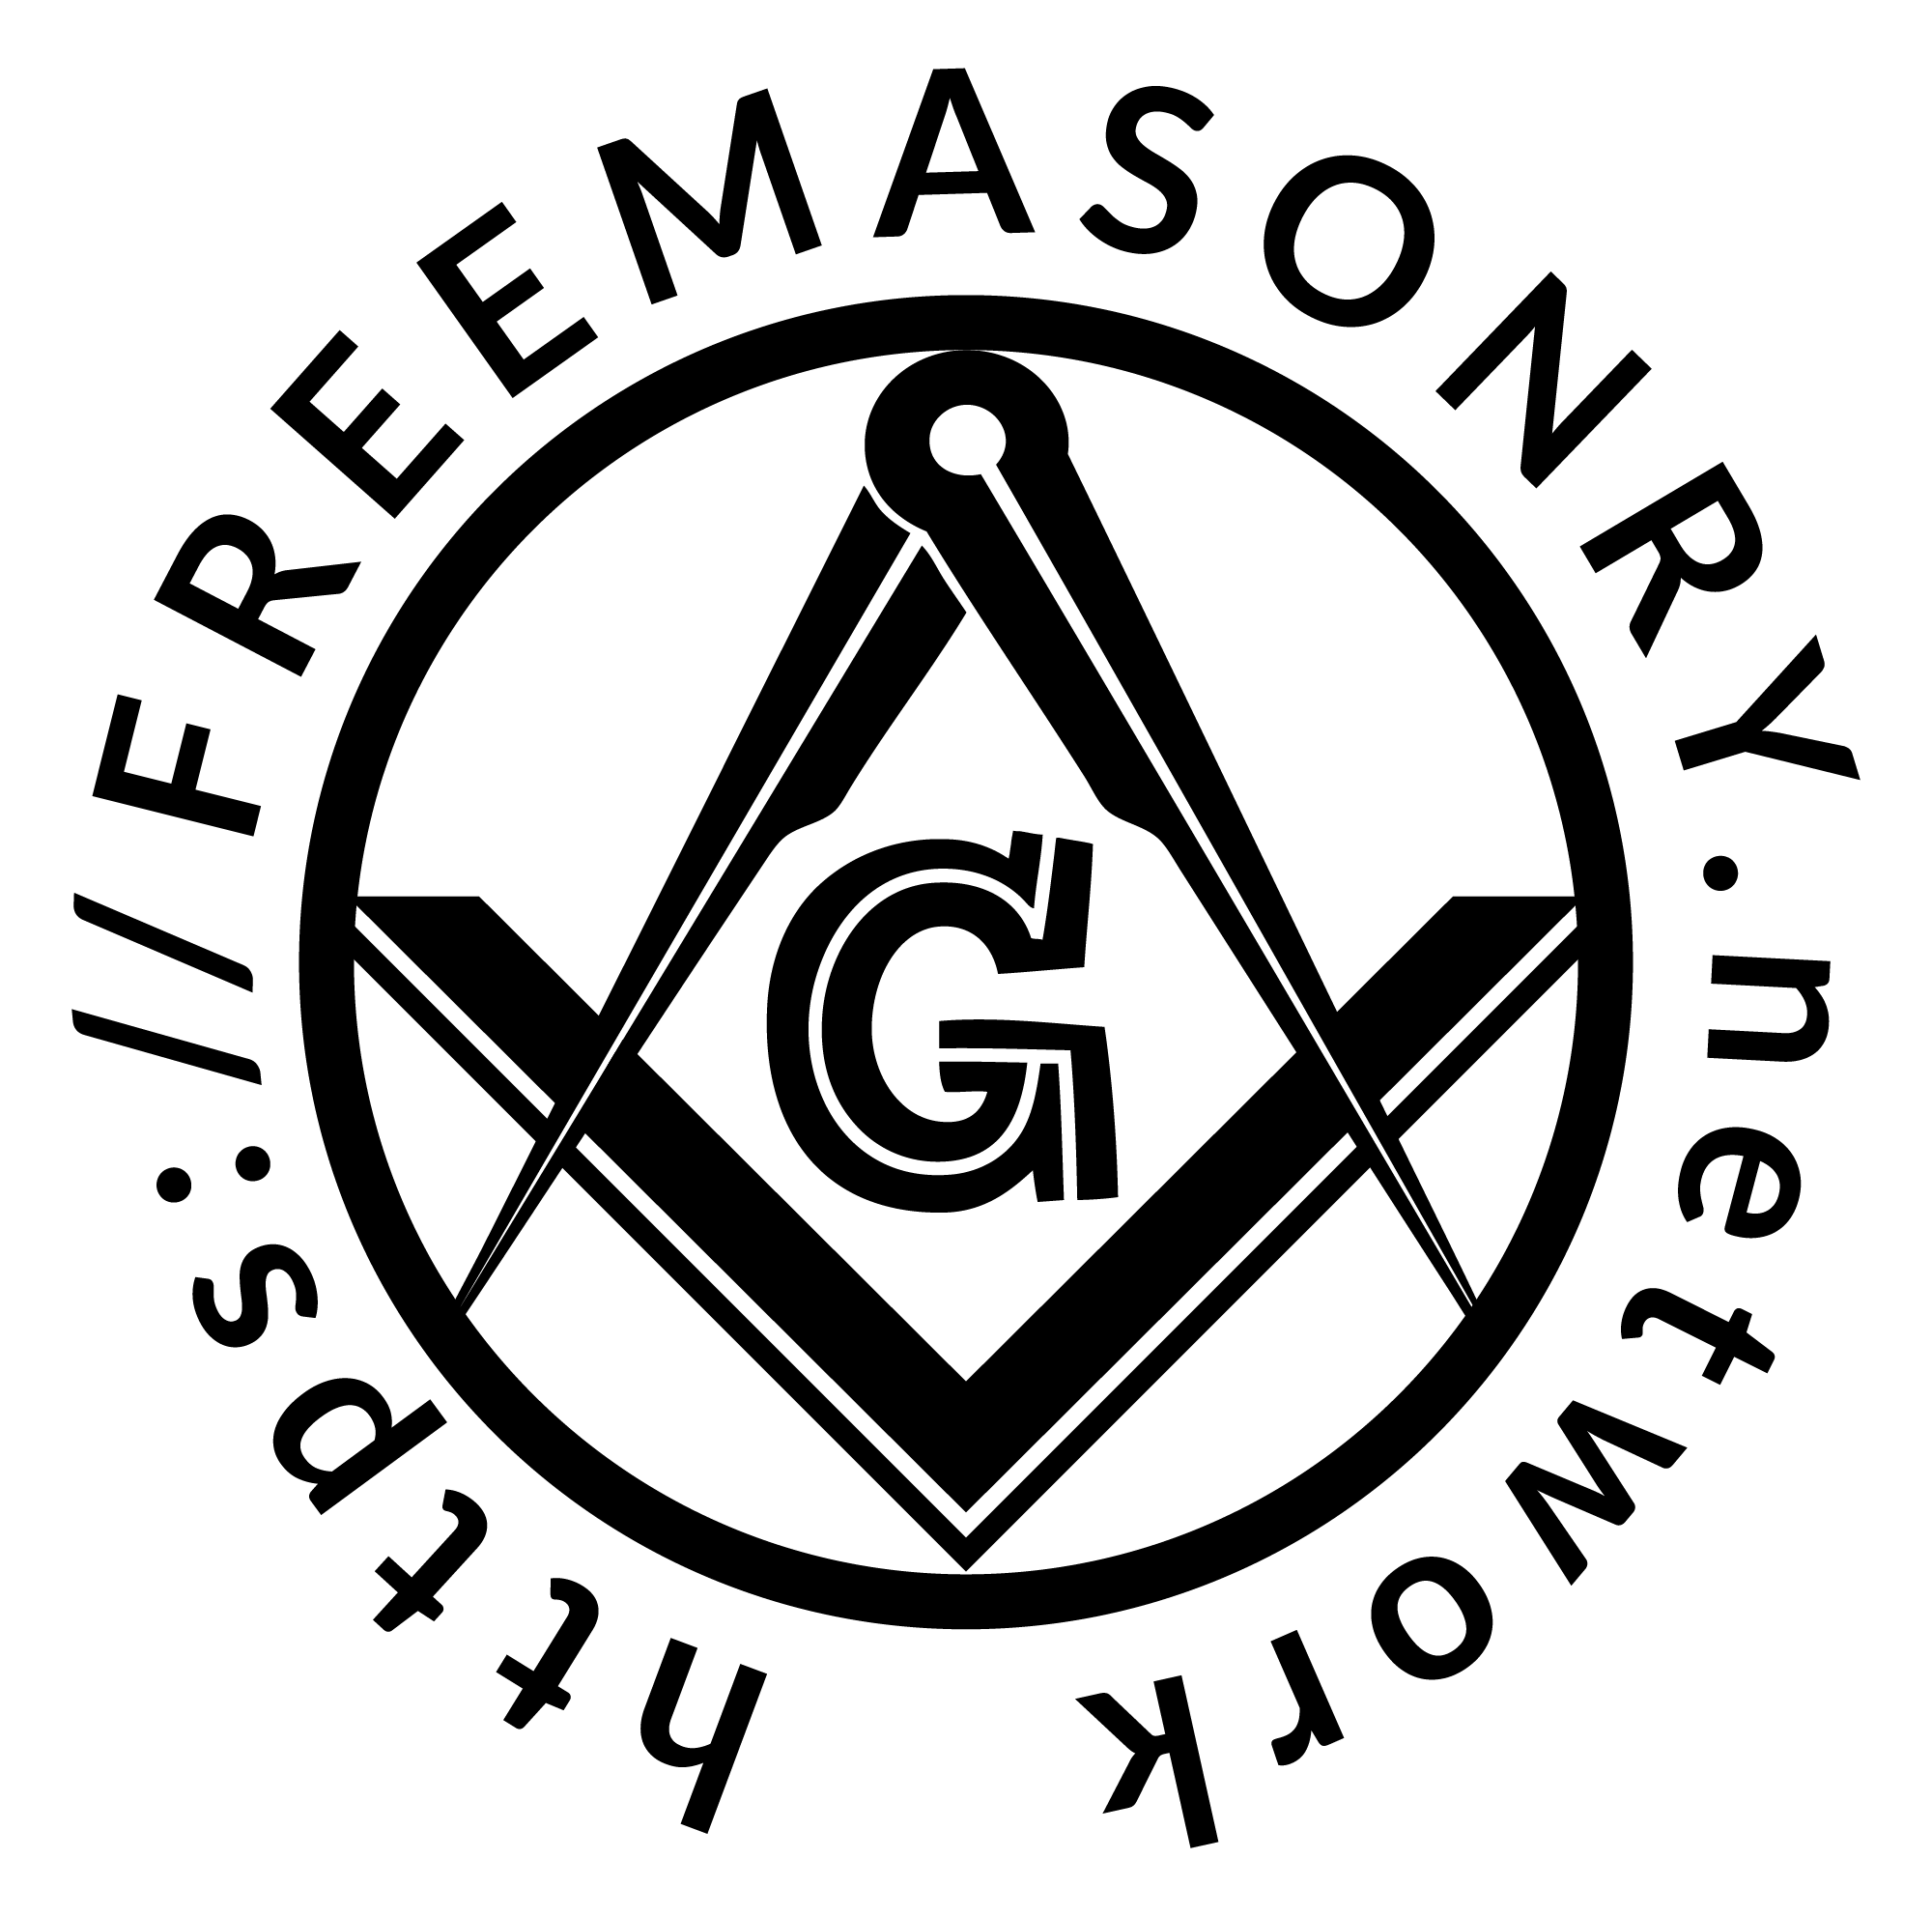 FREEMASONRY IN BULGARIA